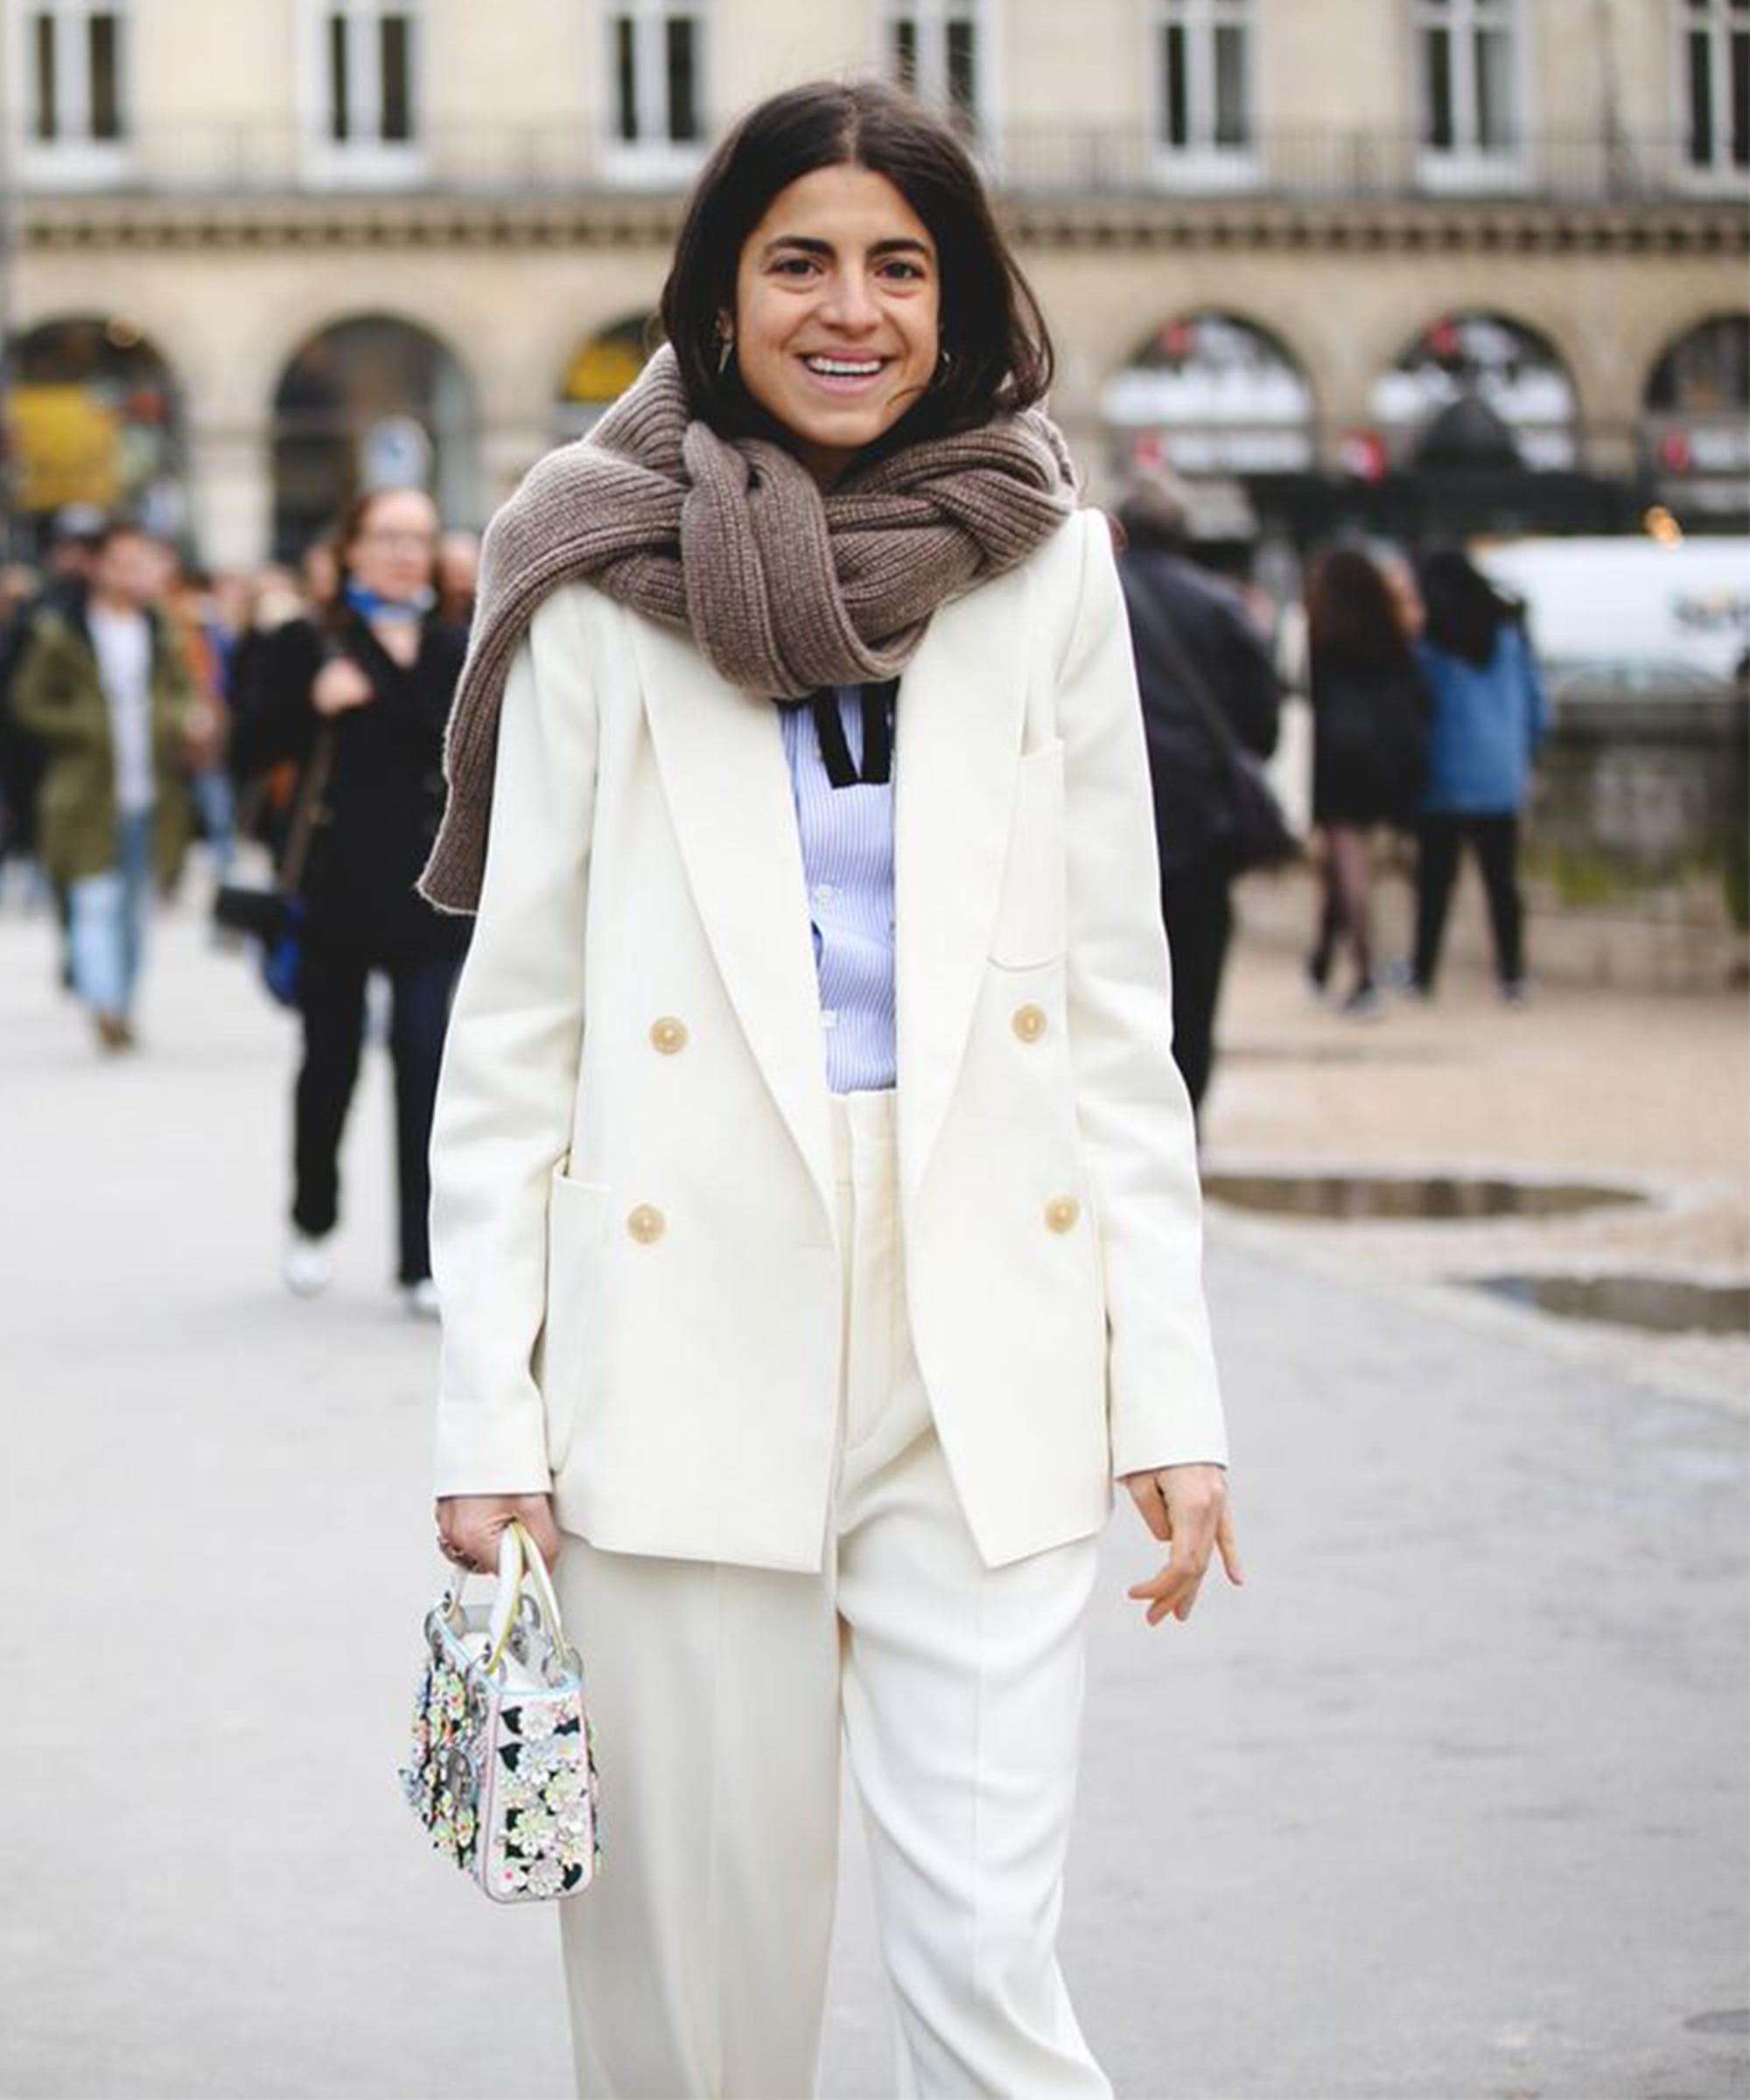 This Coat Is an Unexpected Fashion Favourite images